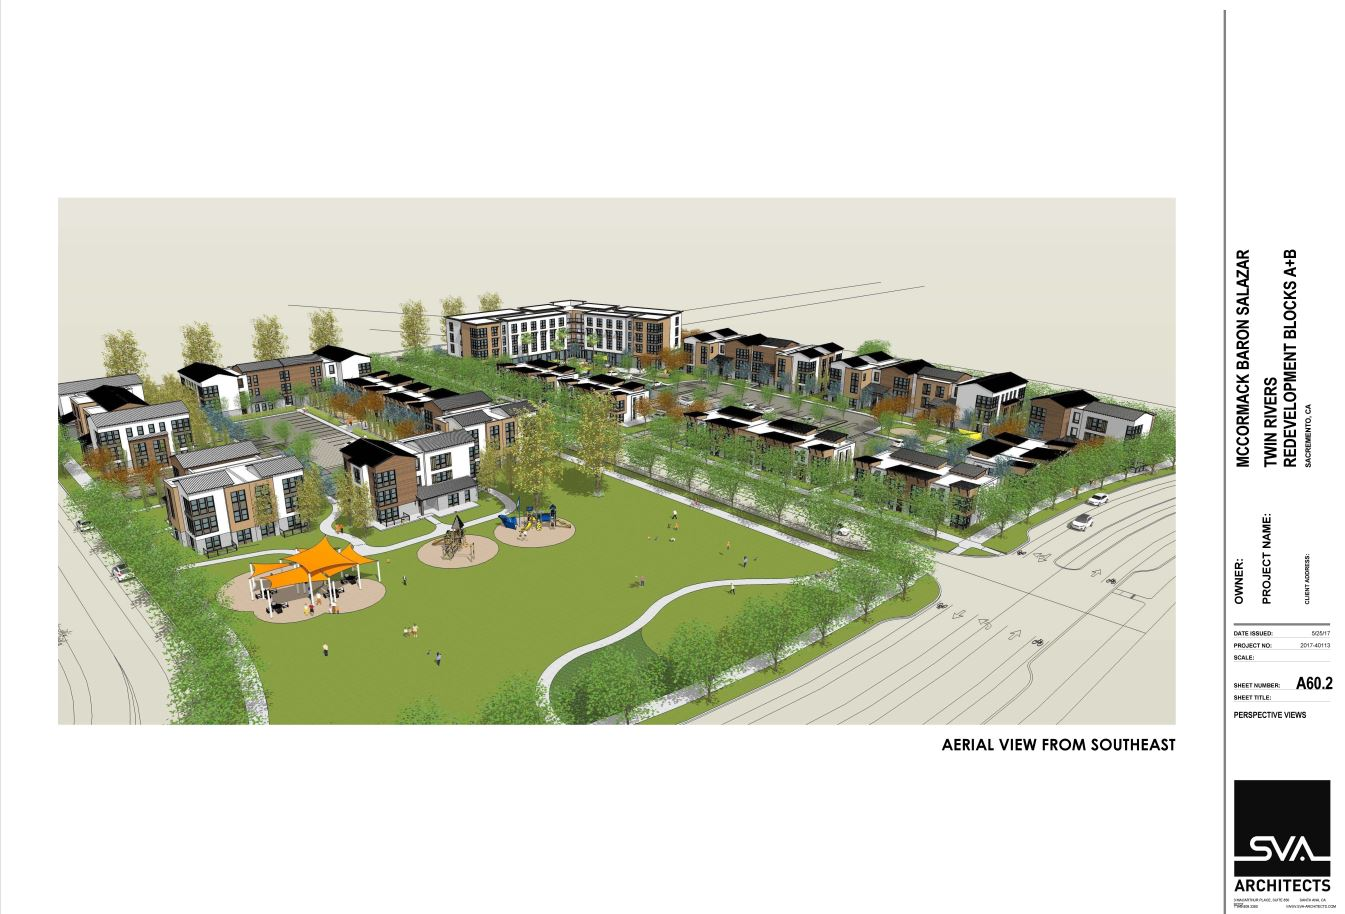 A rendering of the new housing planned on the site of the former Twin Rivers housing project